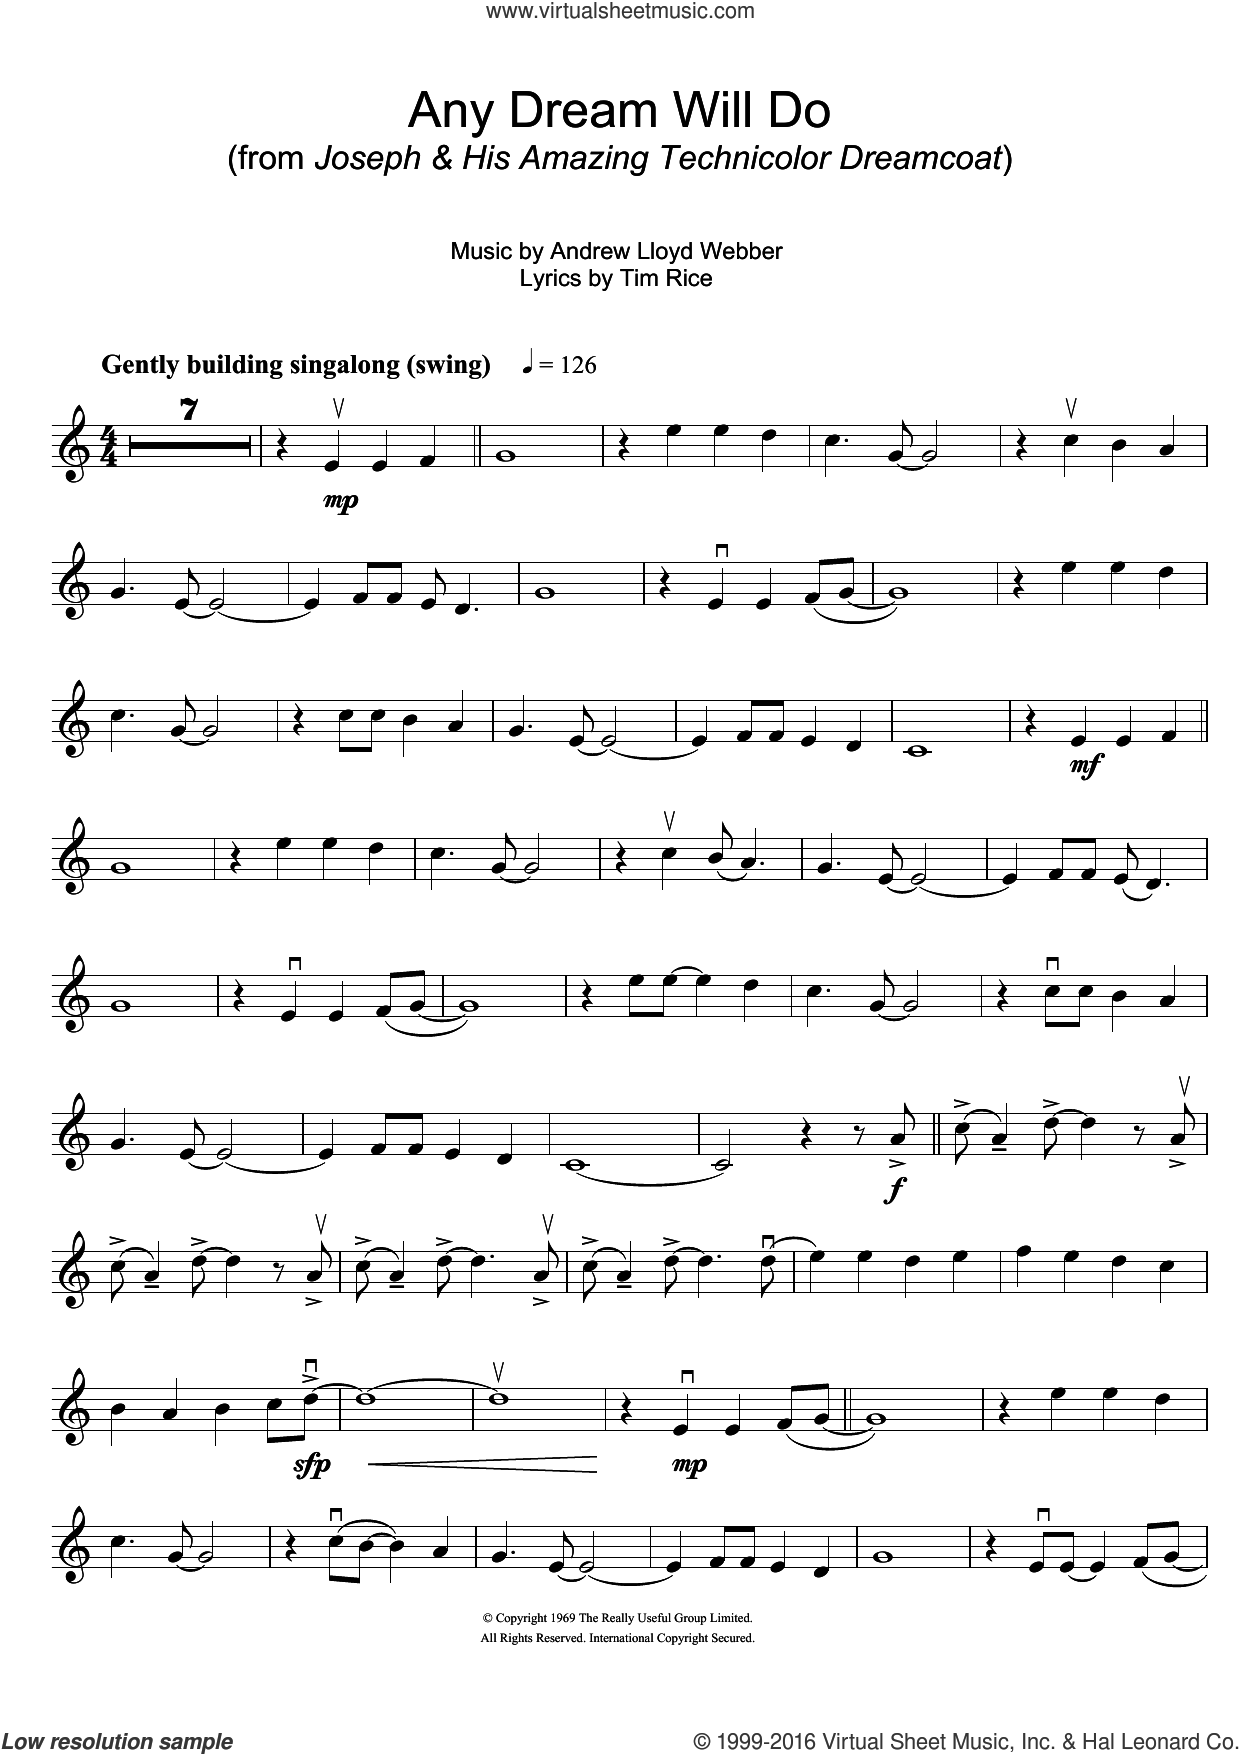 Any Dream Will Do (from Joseph And The Amazing Technicolor Dreamcoat) sheet music for violin solo by Andrew Lloyd Webber and Tim Rice, intermediate skill level